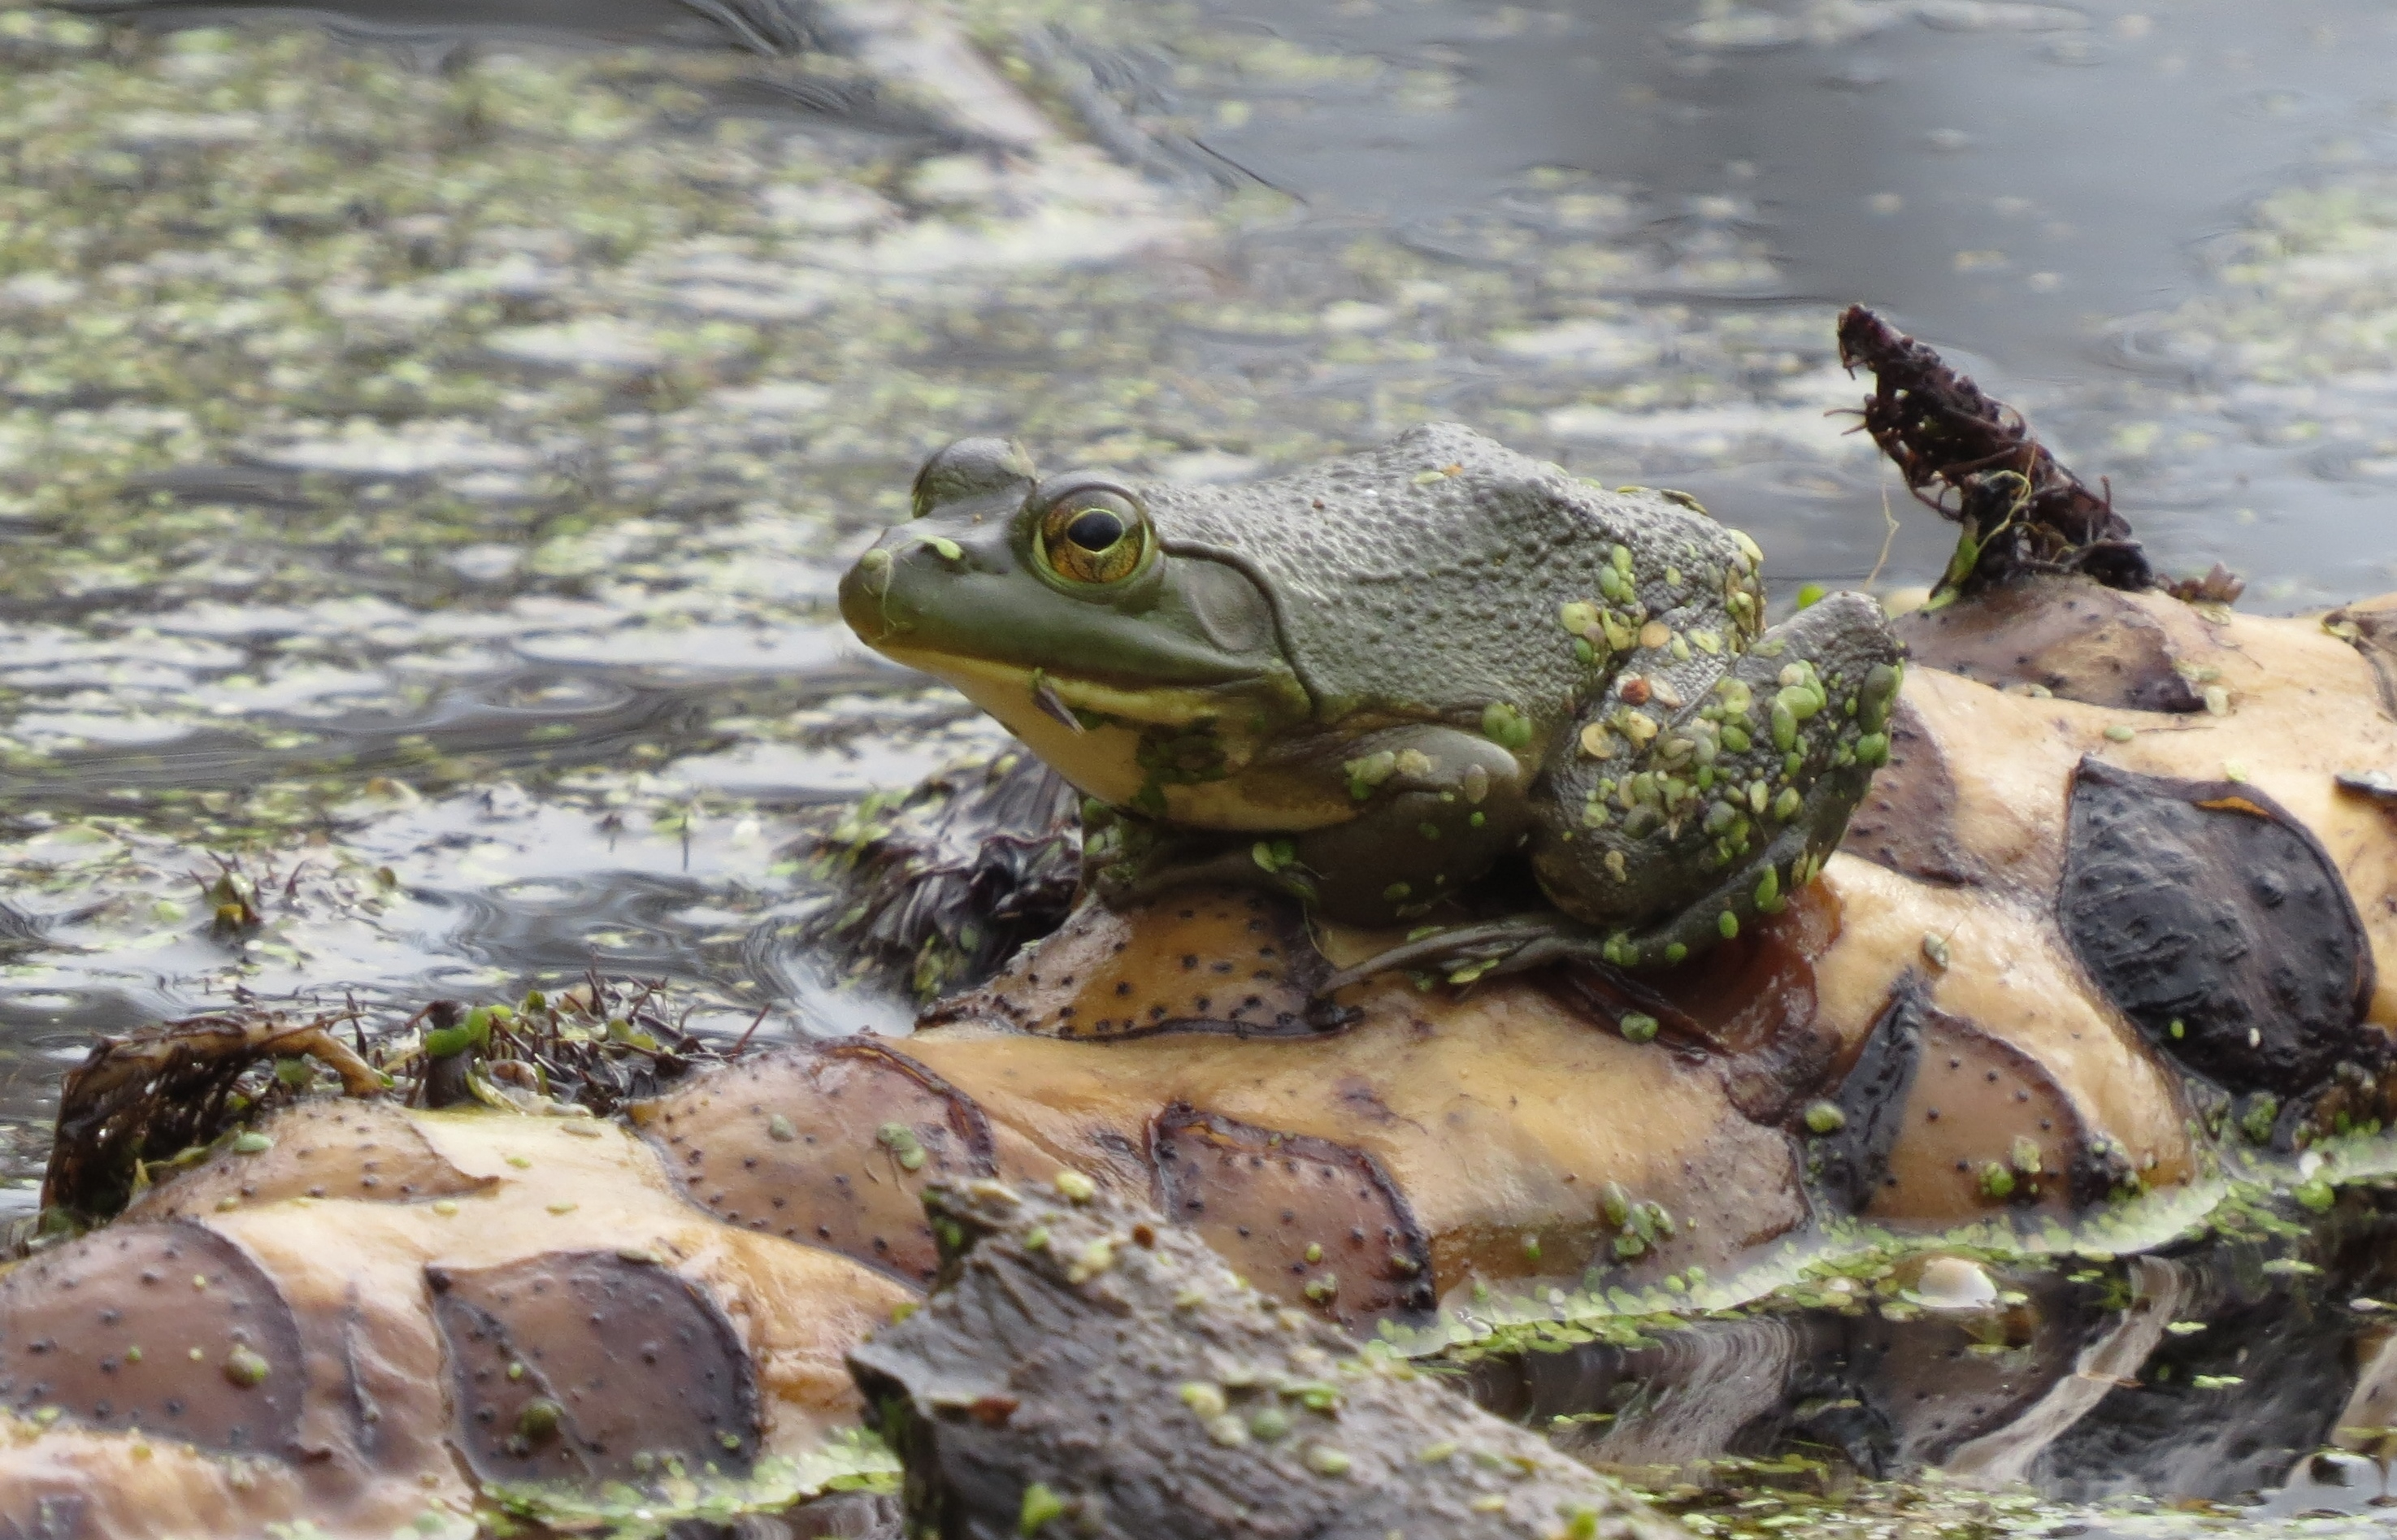 A bullfrog emerging to sit on a log during the warm December weather.